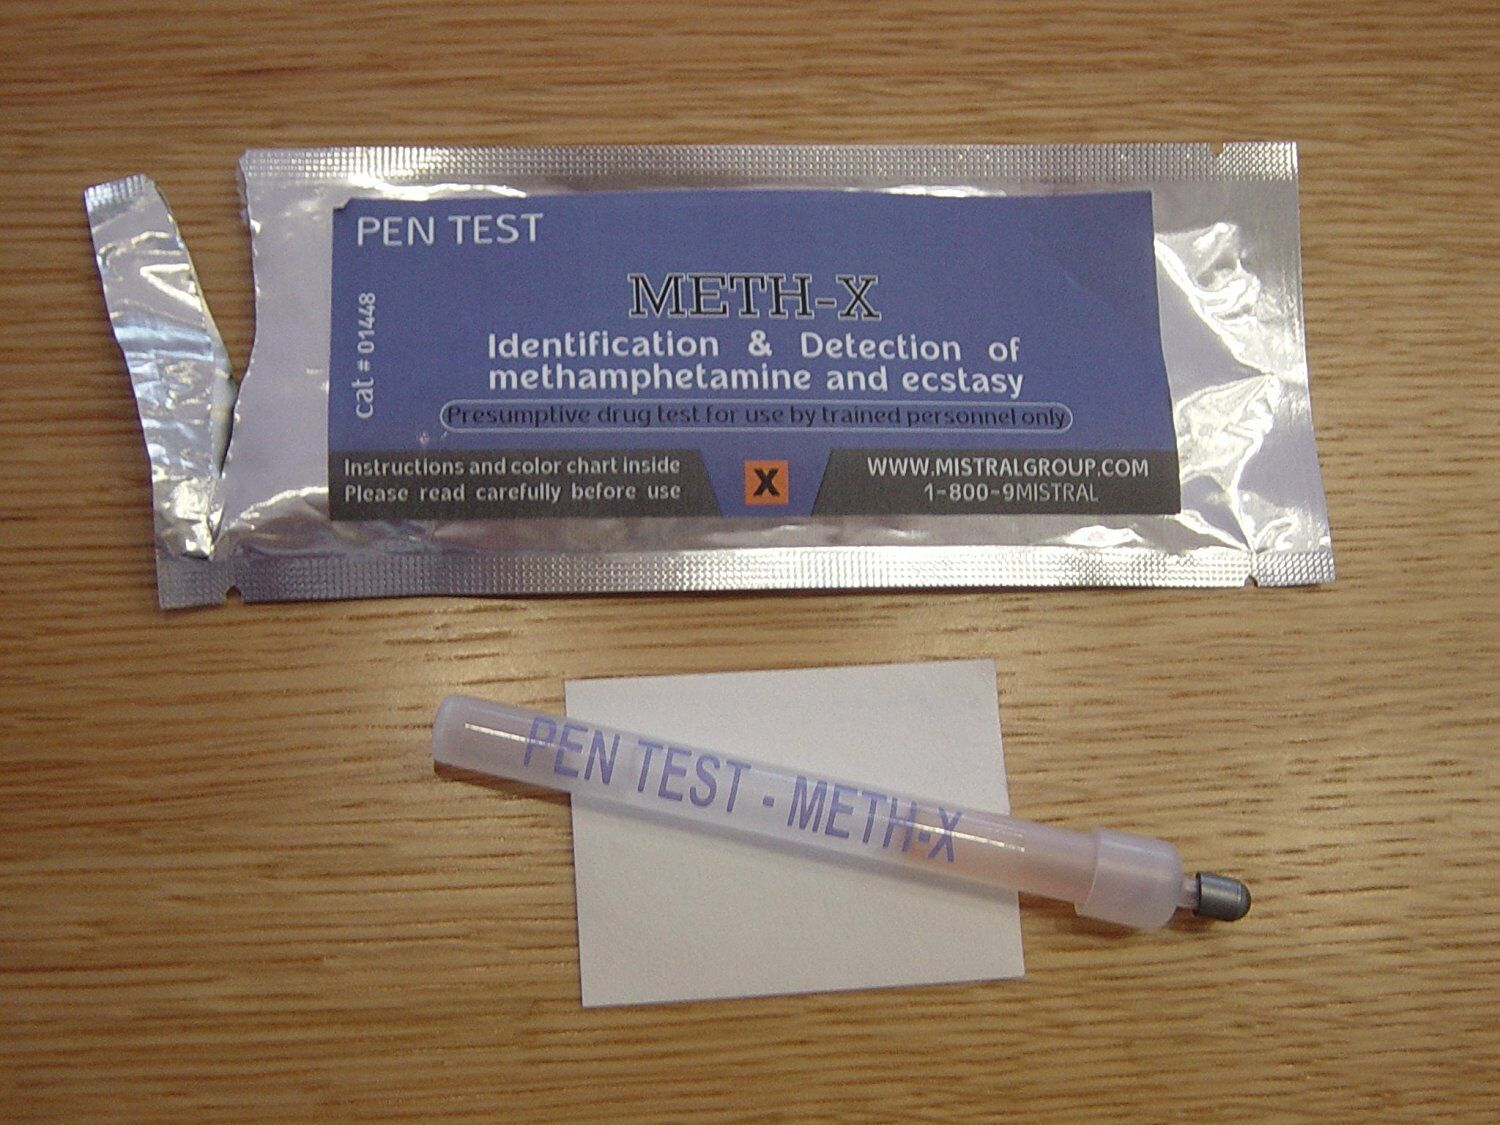 5 Mistral Meth Methamphetamine  Drug Detection Test Identification Residue Pens  selling well all over the world